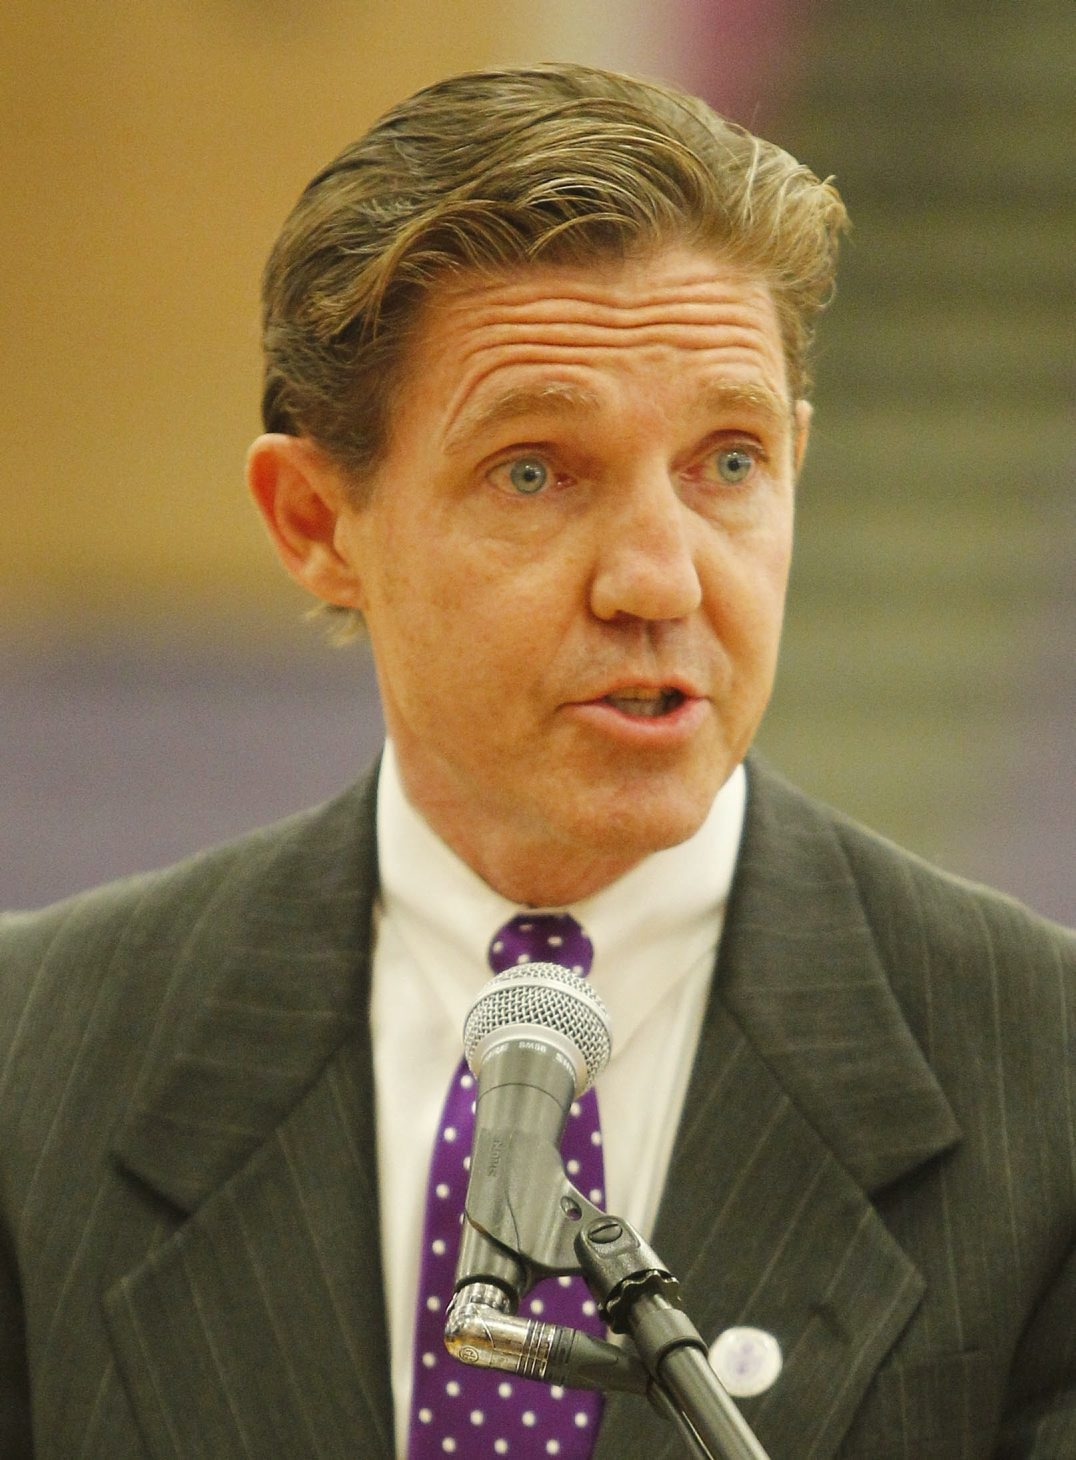 Tom Crowley was hired as athletic director of Niagara University in October 2012.